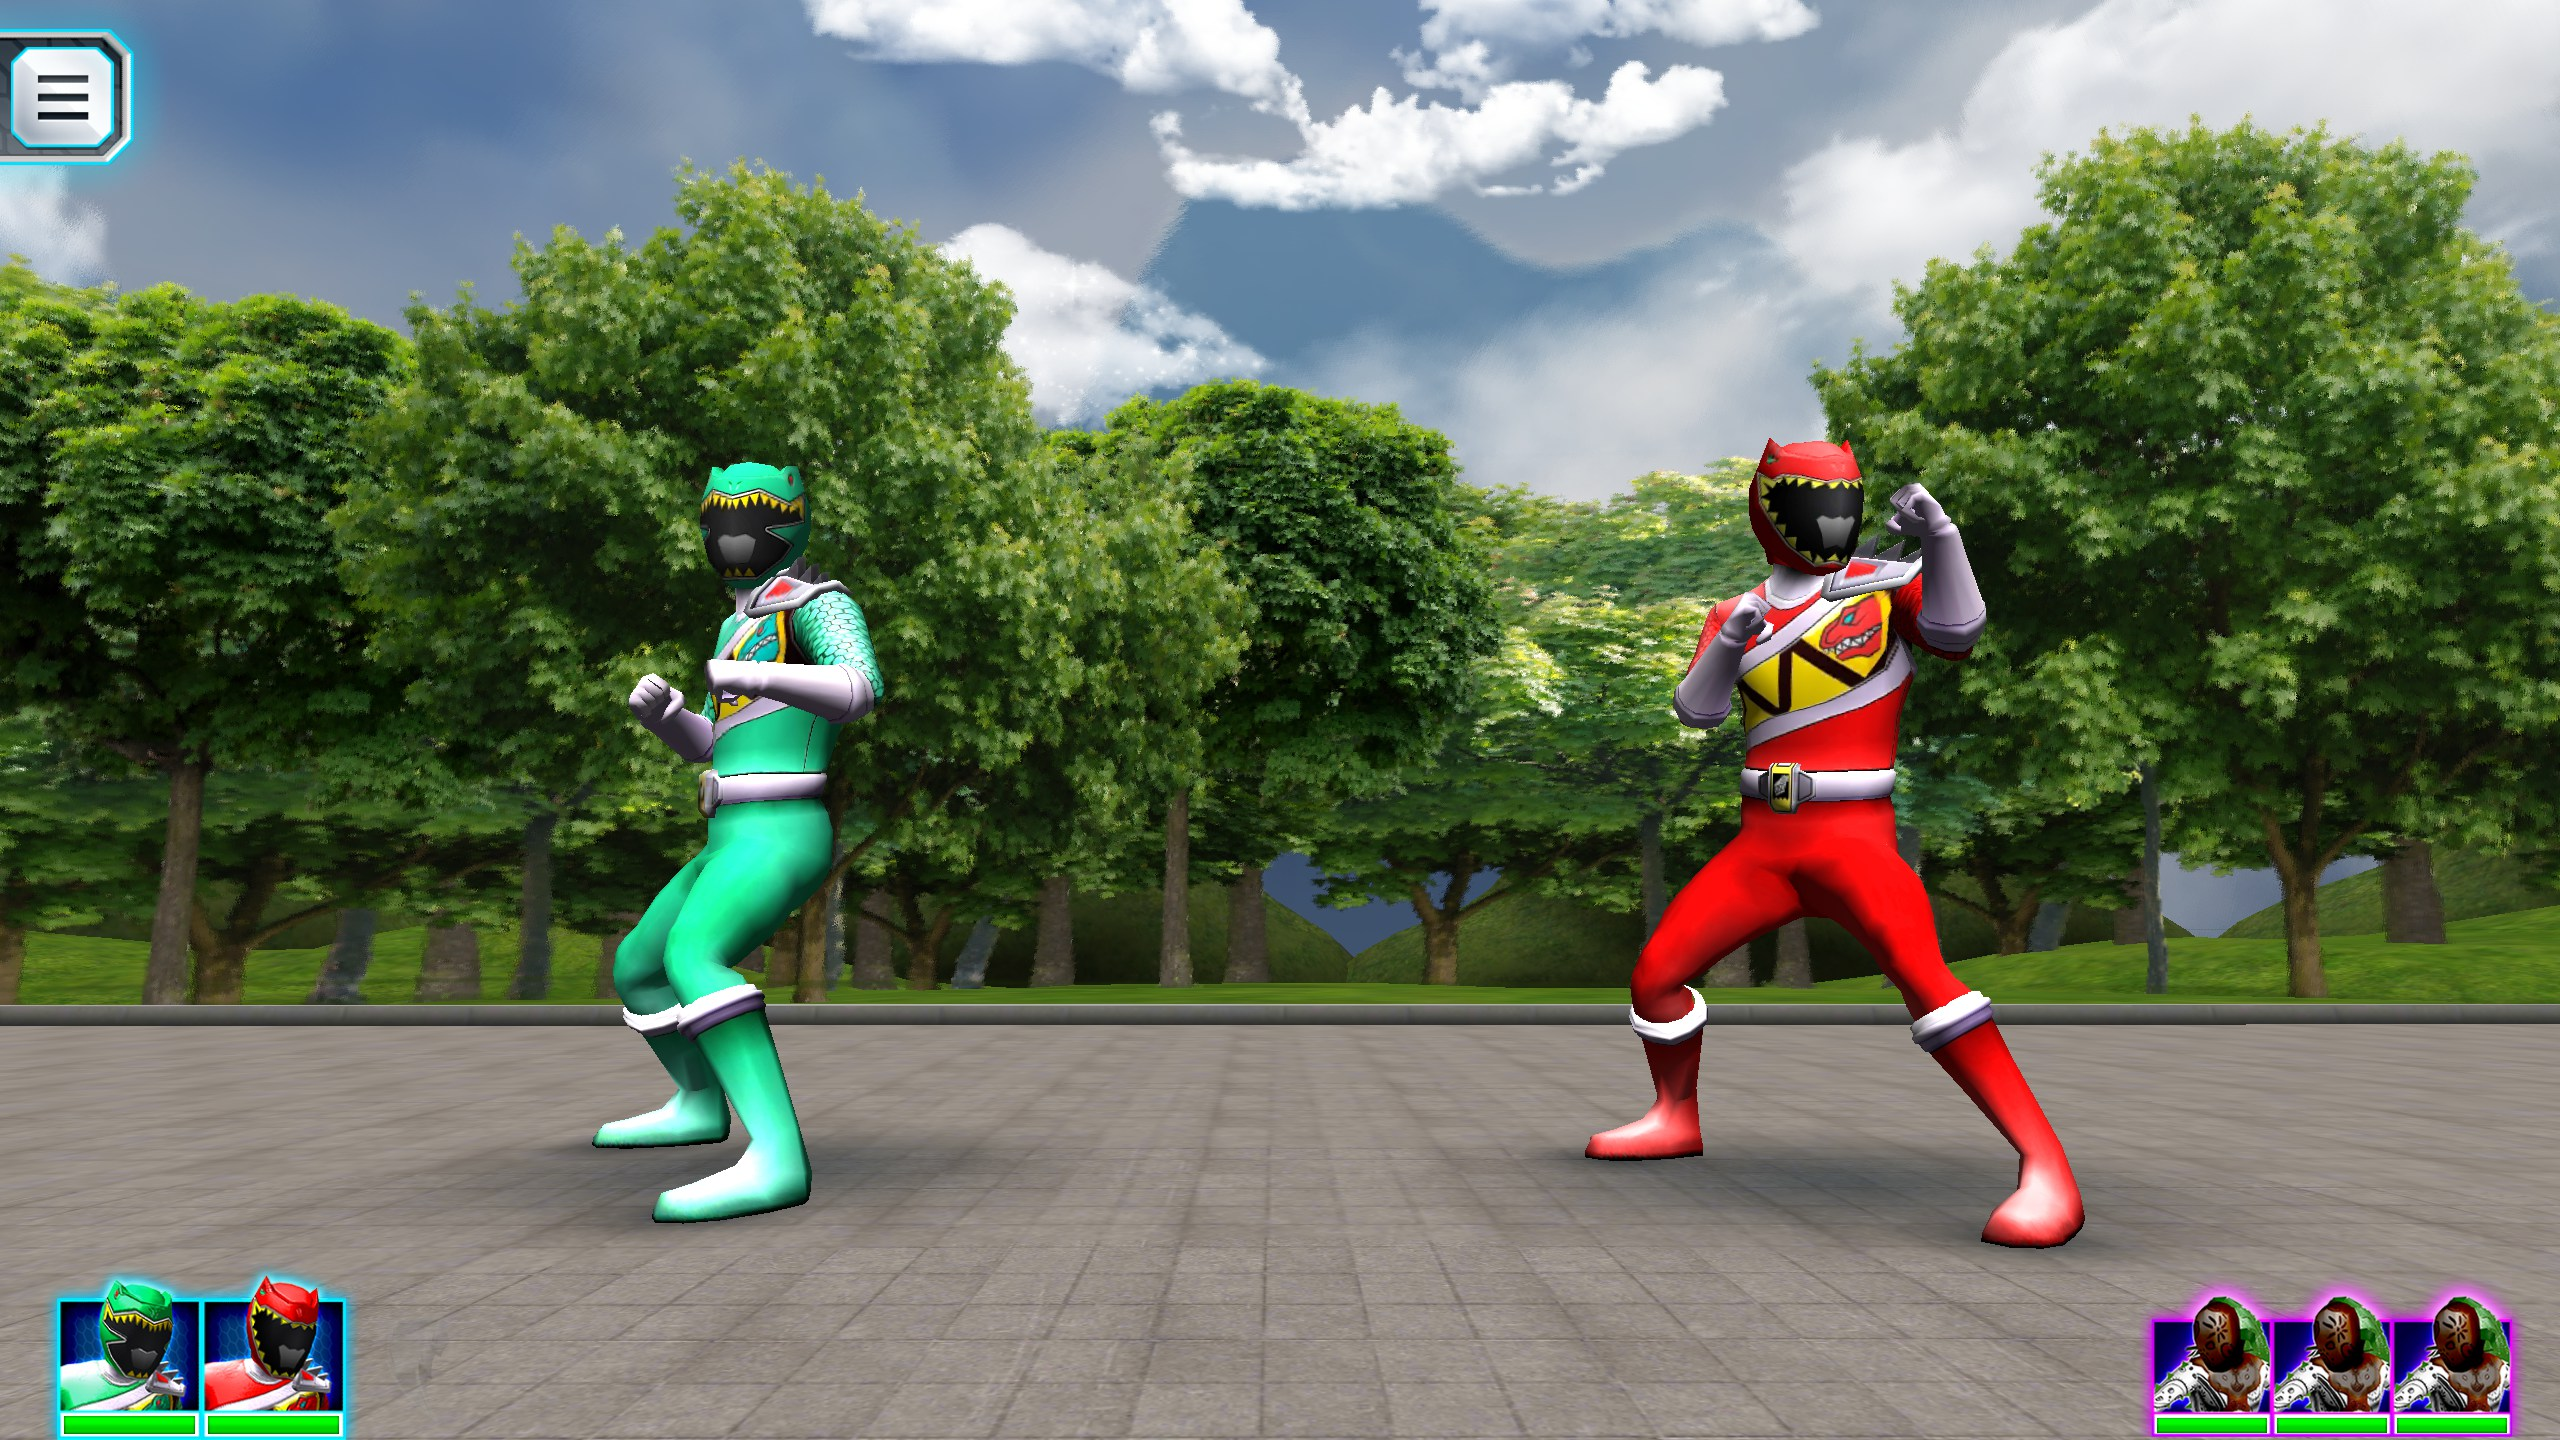 Power rangers dino rumble games for android 2018 free download power rangers dino rumble - Power rangers ryukendo games free download ...